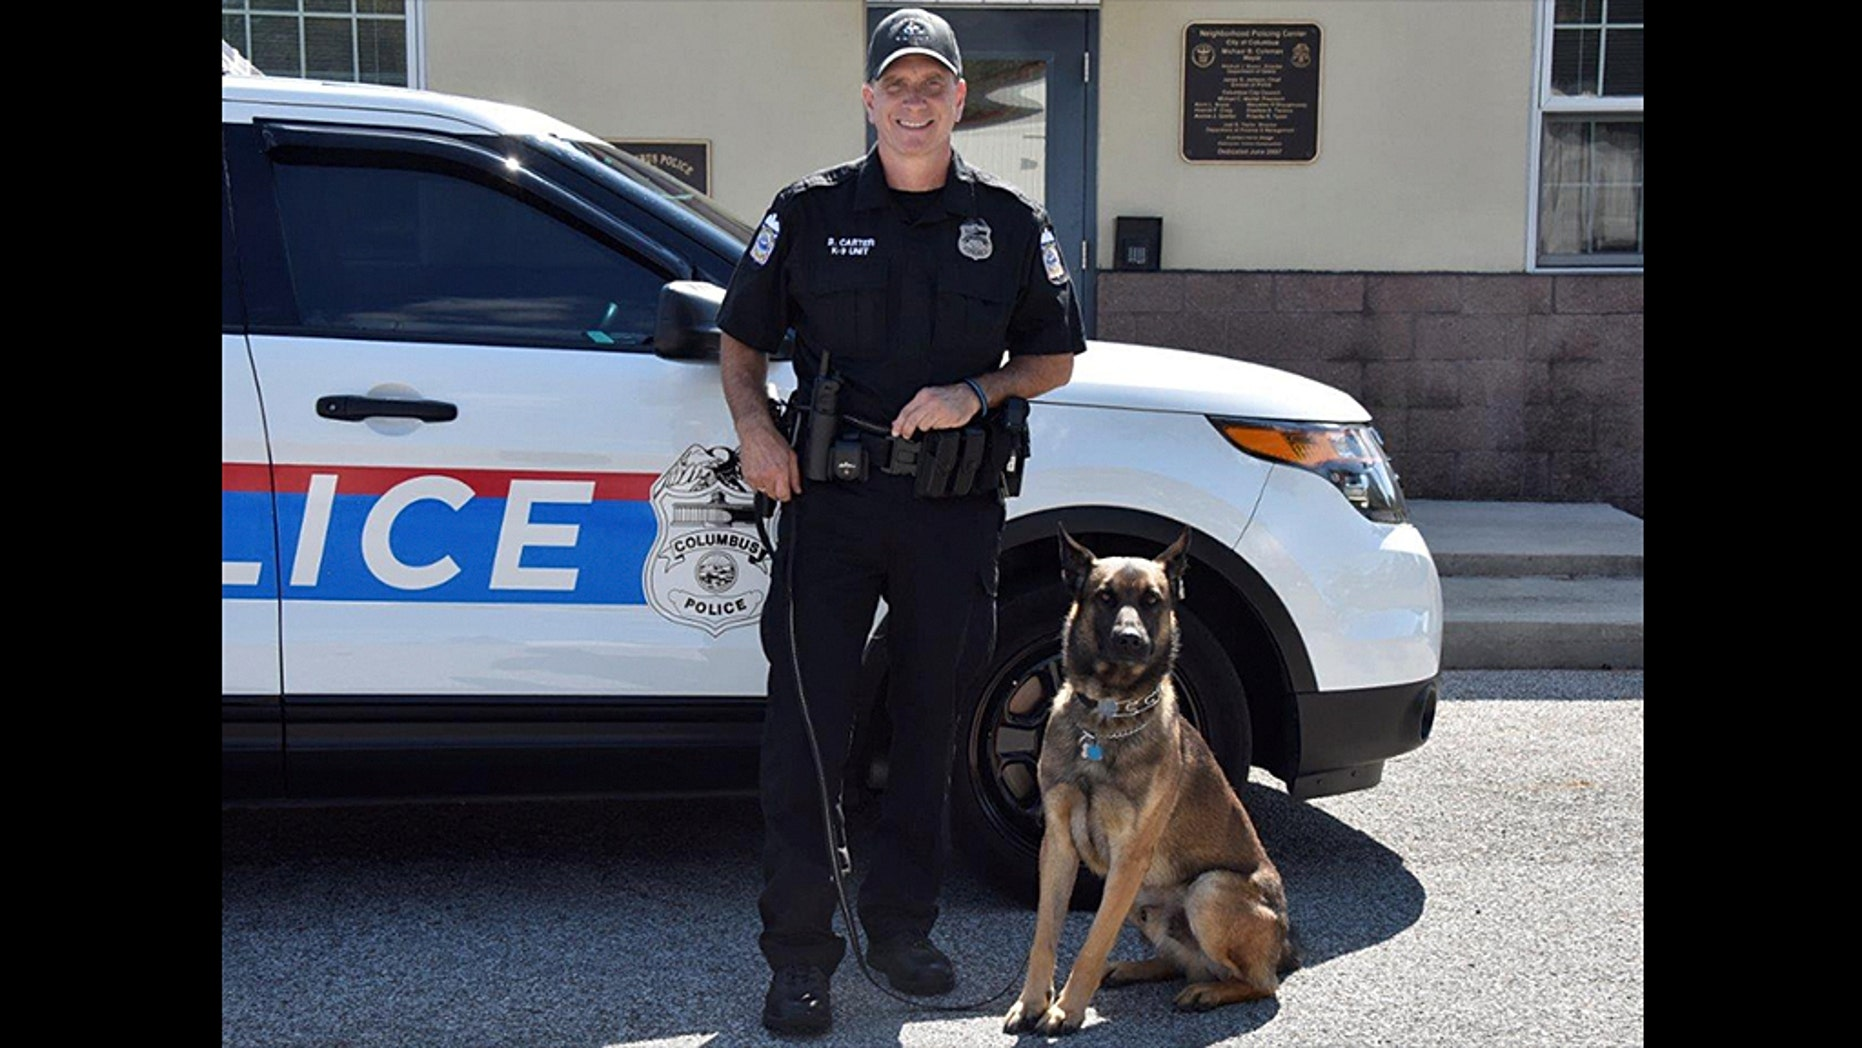 Brian Carter, an officer with the Columbus Police Department in Ohio, and his K9 partner Benzi in March 2018.